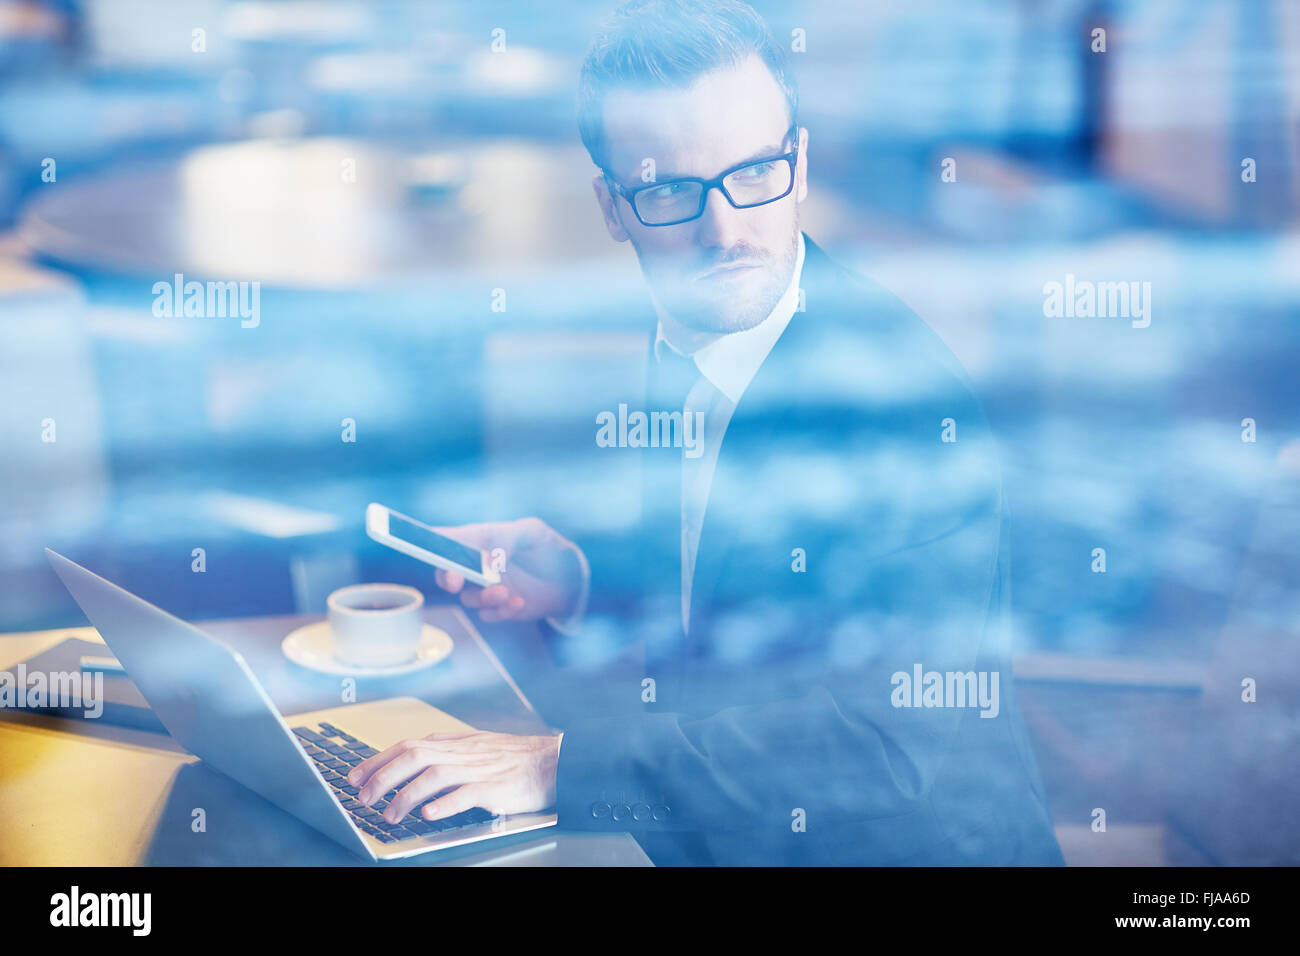 Serious employee with cellphone typing on laptop - Stock Image